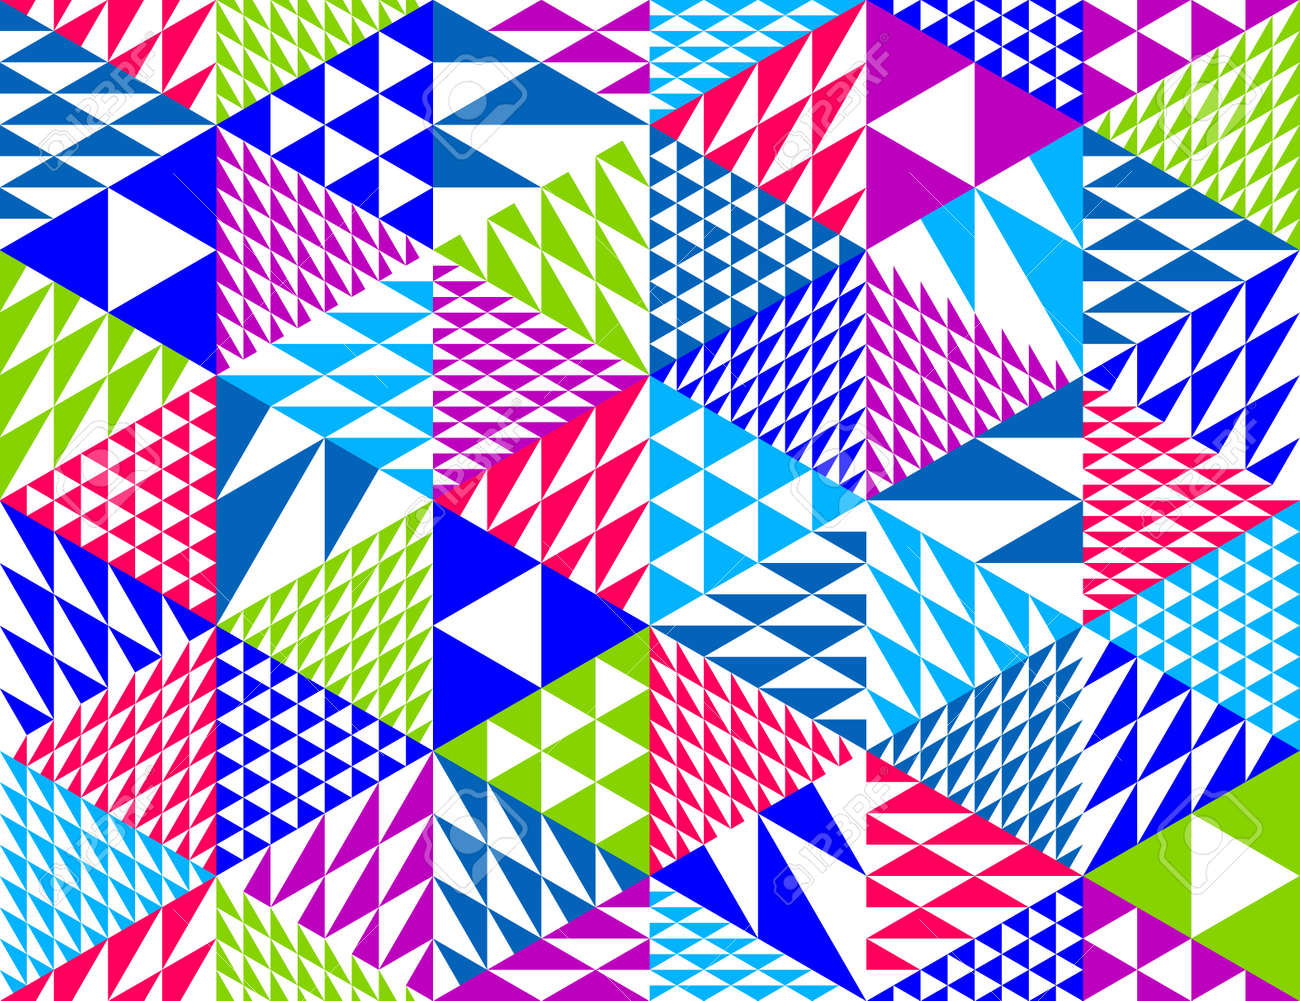 Geometric 3D seamless pattern with cubes, rhombus and triangles boxes blocks vector background, architecture and construction, wallpaper design. - 168006341